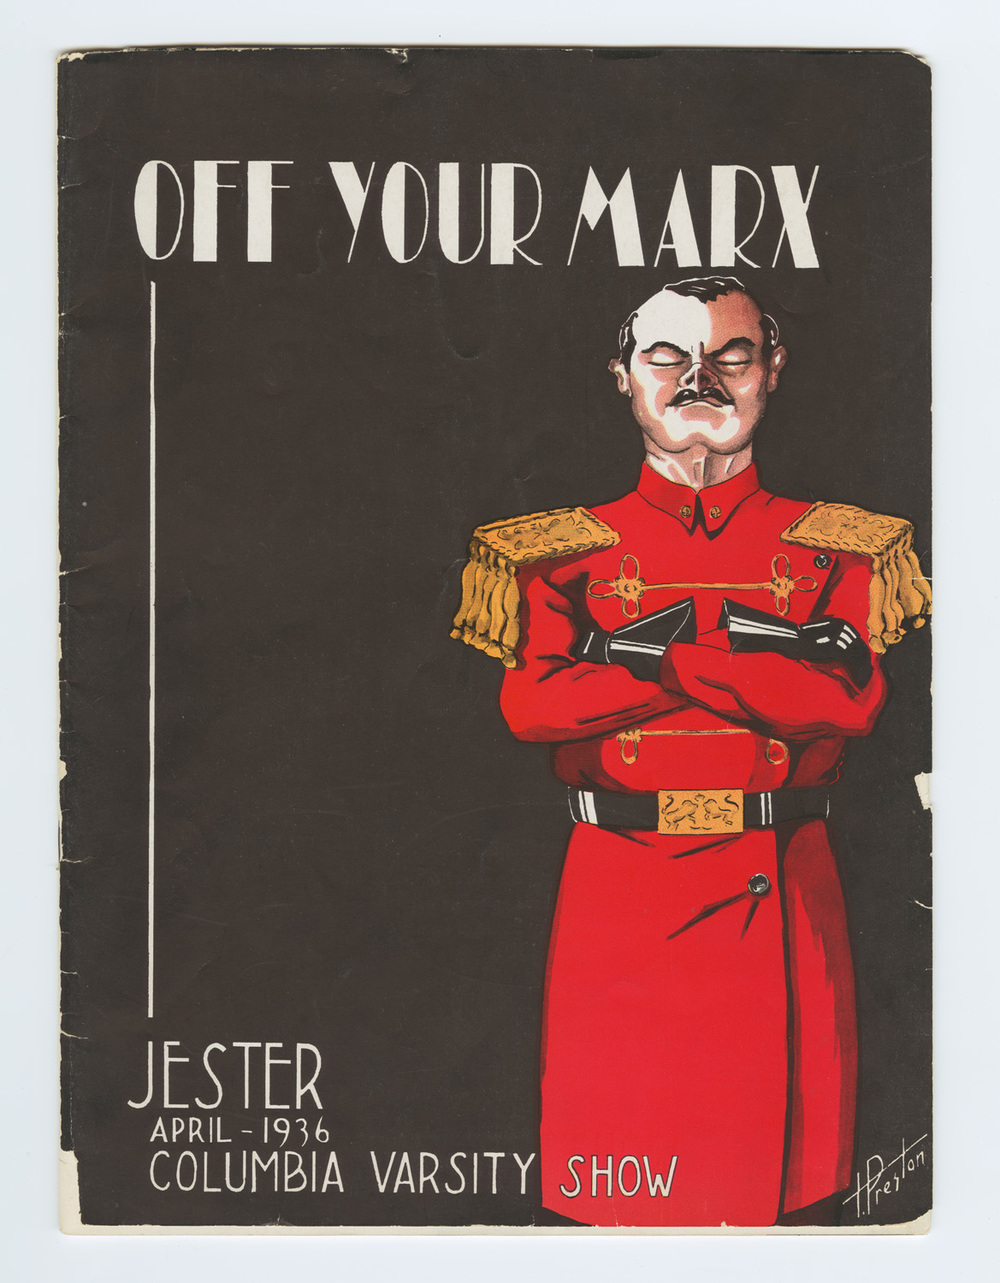 Off Your Marx - program cover 1936.jpg